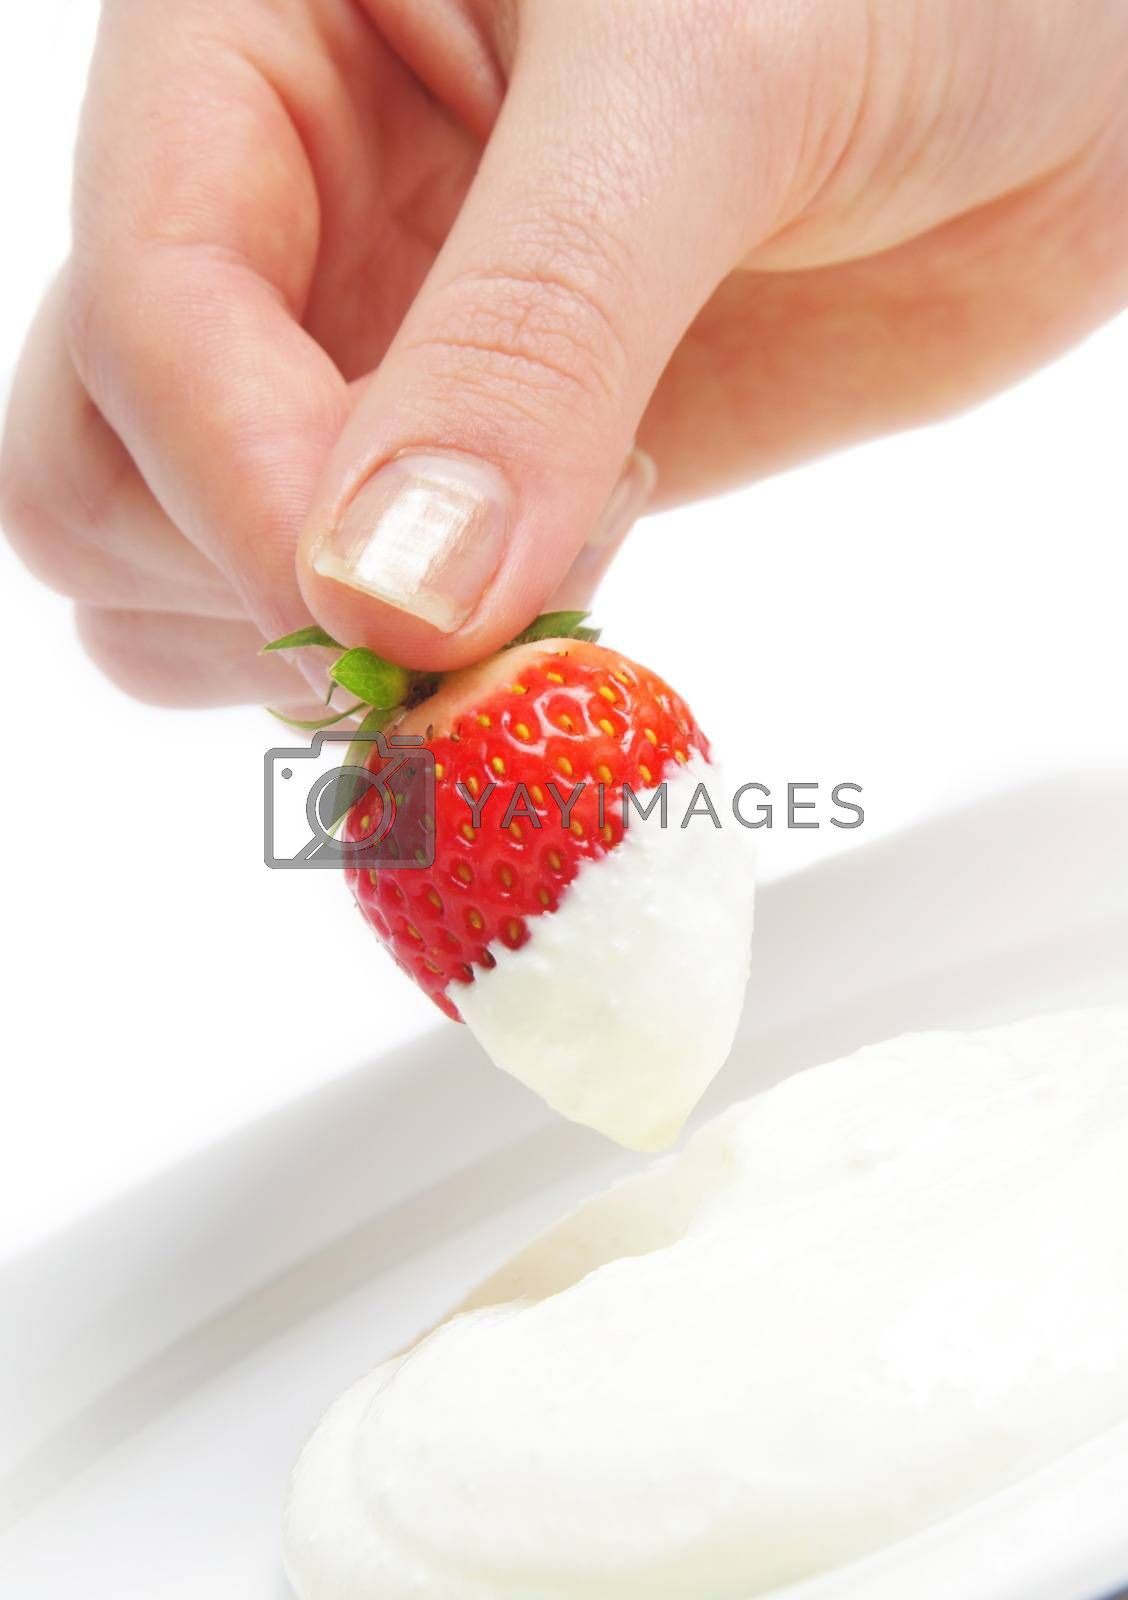 strawberry in hand with cream over white